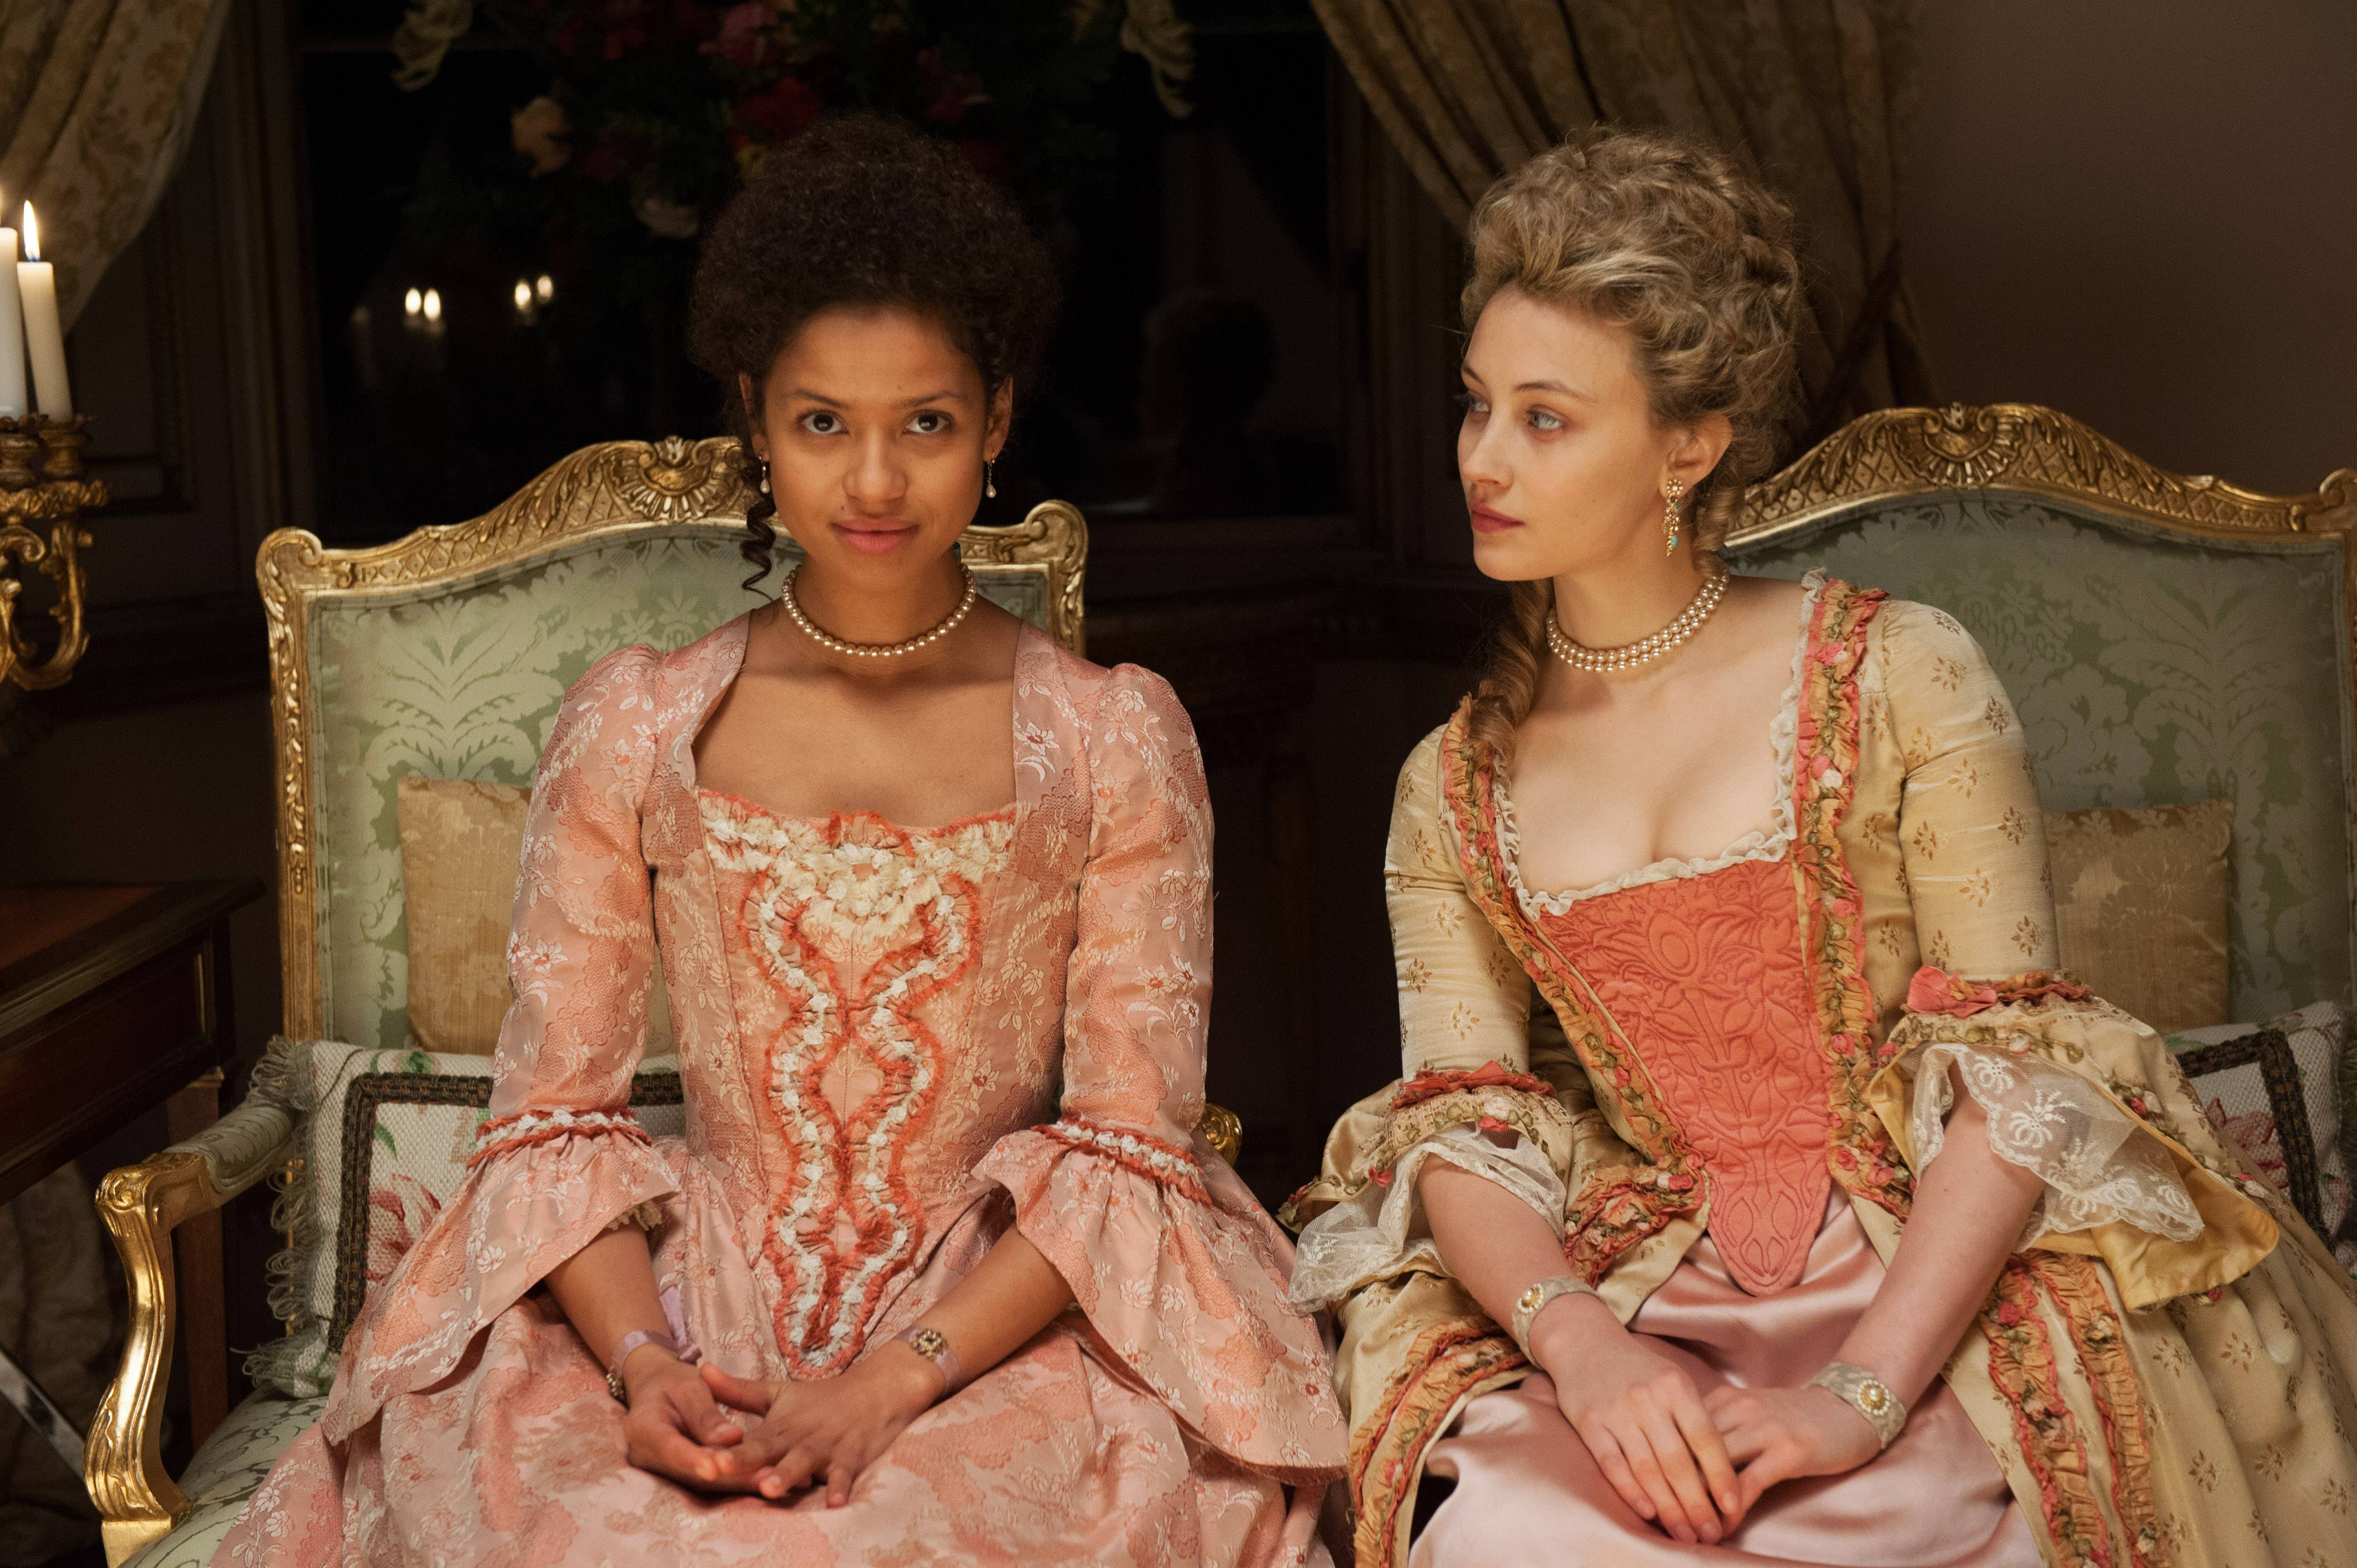 "The biracial Dido Elizabeth Belle (Gugu Mbatha-Raw, left) strikes up an unusual friendship with the white Lady Elizabeth Murray (Sarah Gadon) in 18th century England in the based-on-fact movie ""Belle."""